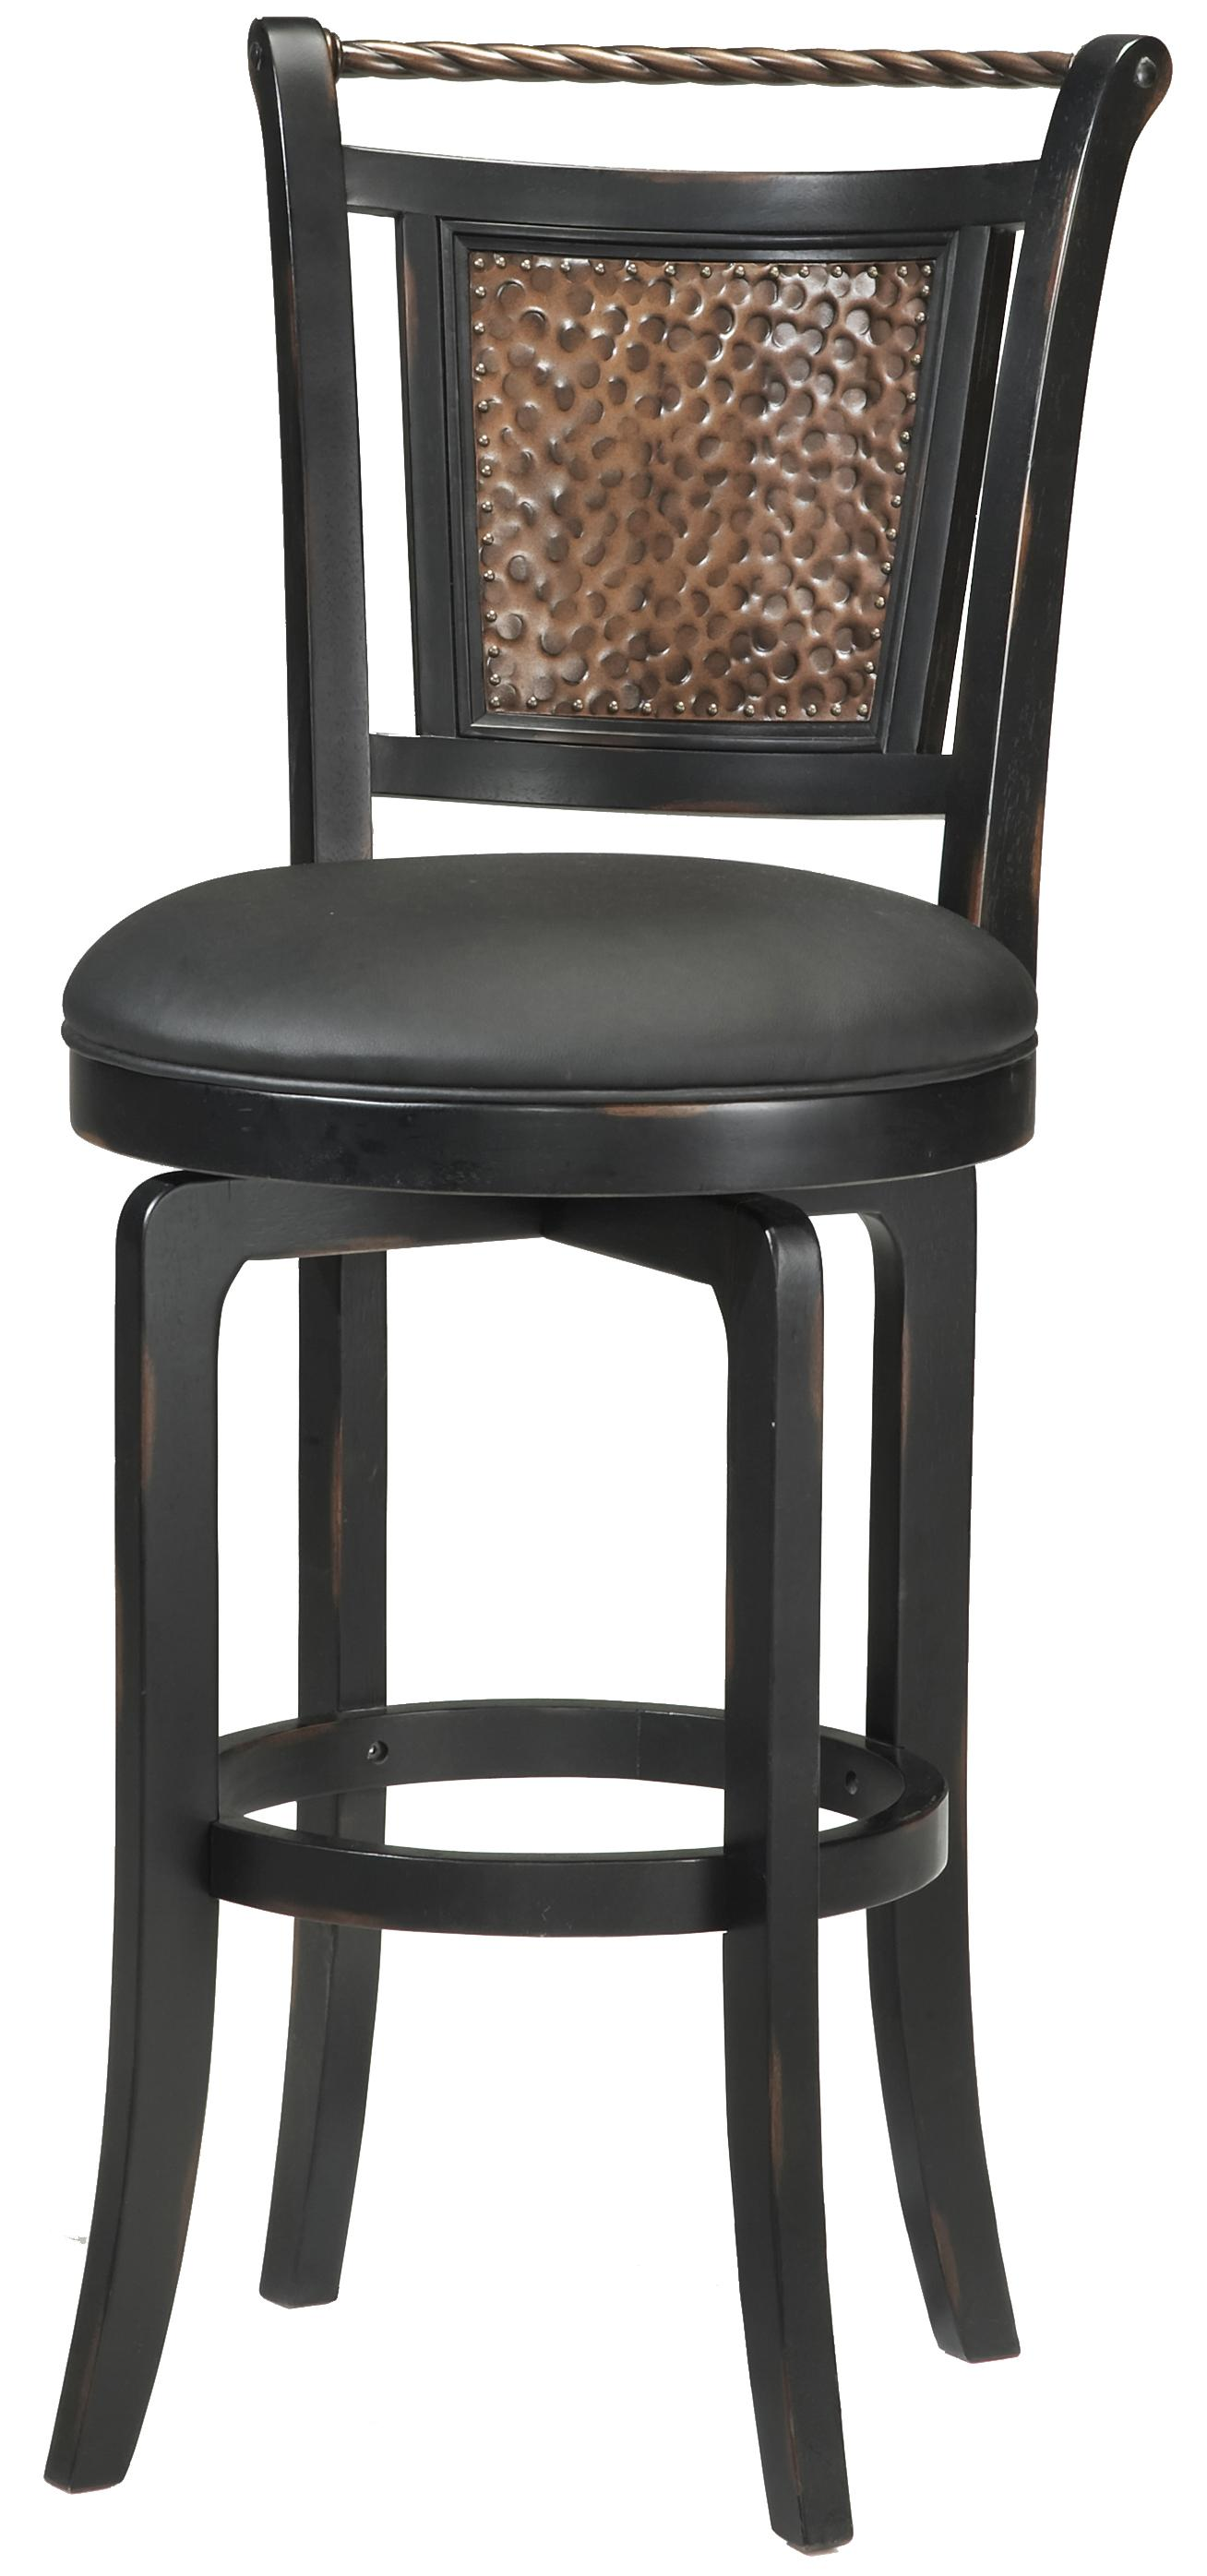 Wood Stools 265 Counter Height Norwood Swivel Stool by